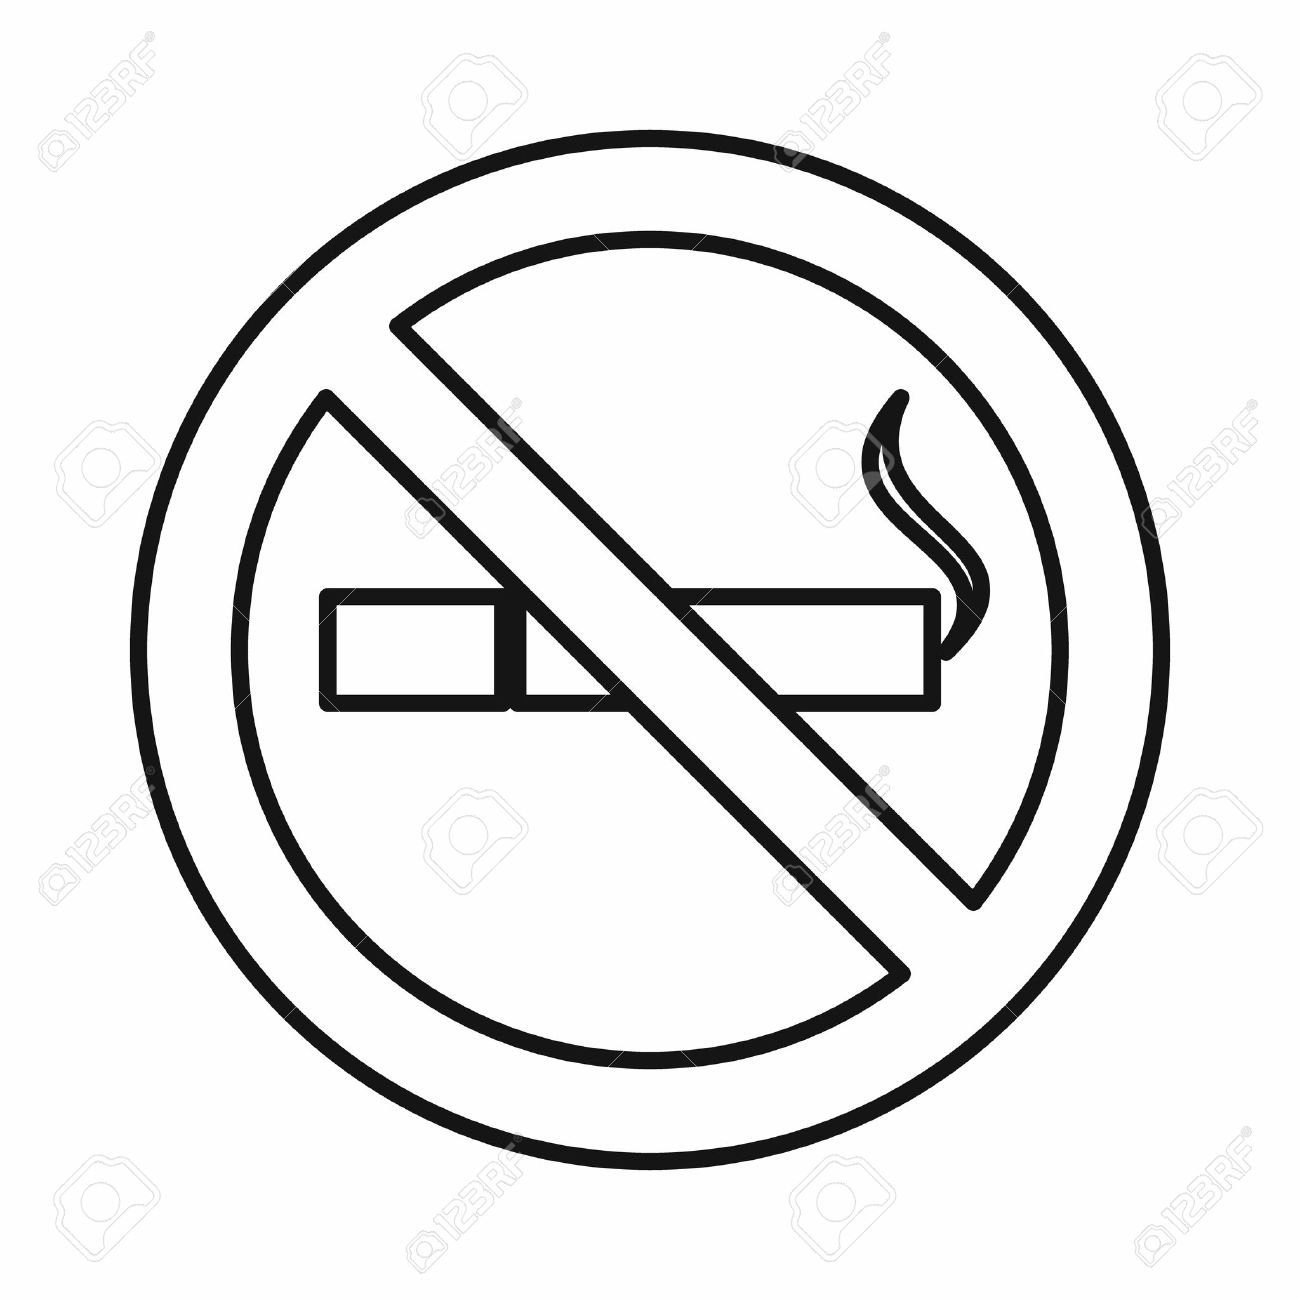 no smoking sign icon in outline style isolated on white background stock vector 58856255